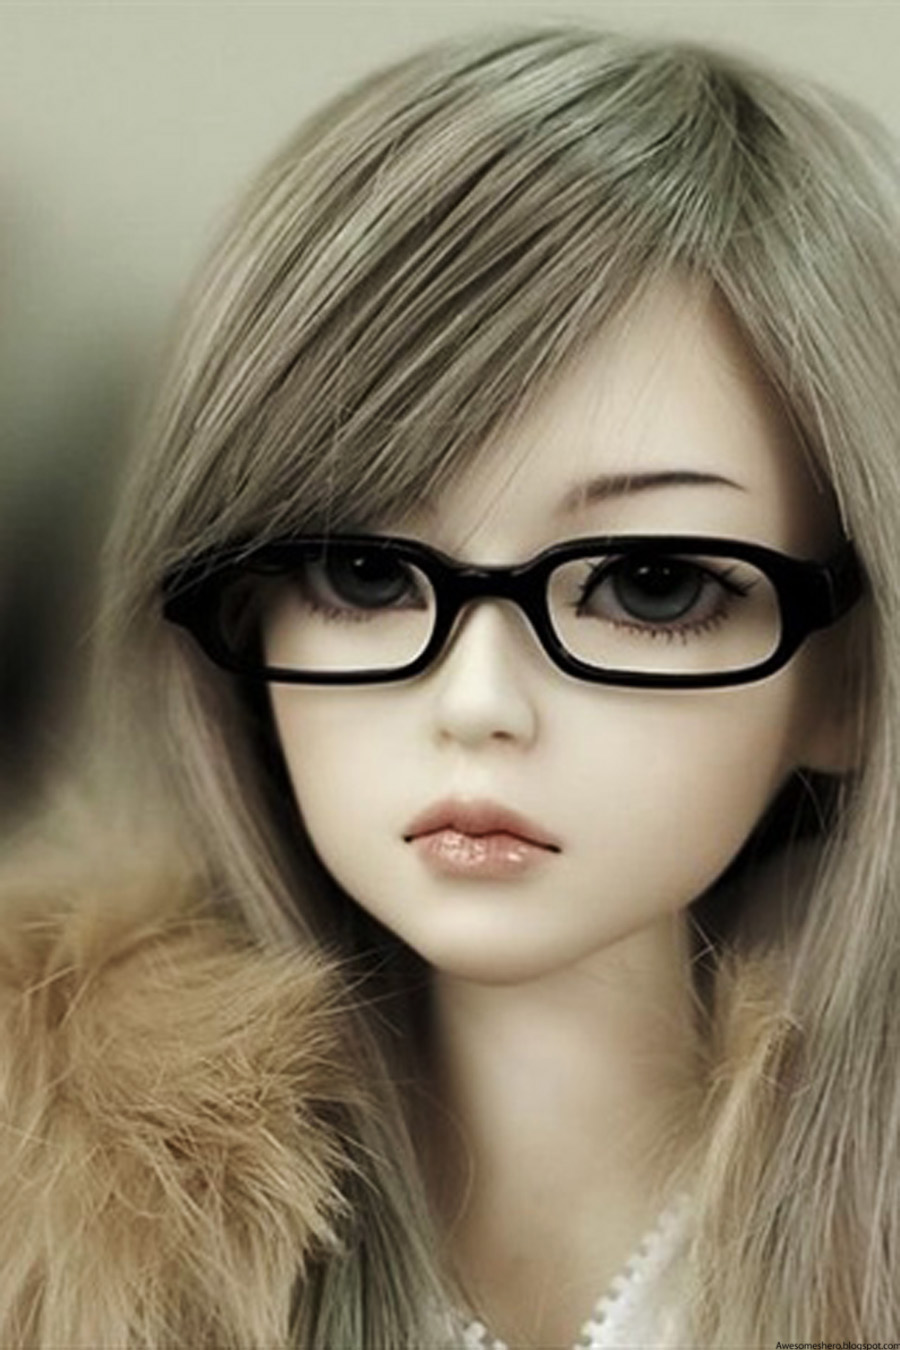 a11-swift ♡ images cute doll faces HD wallpaper and background photos